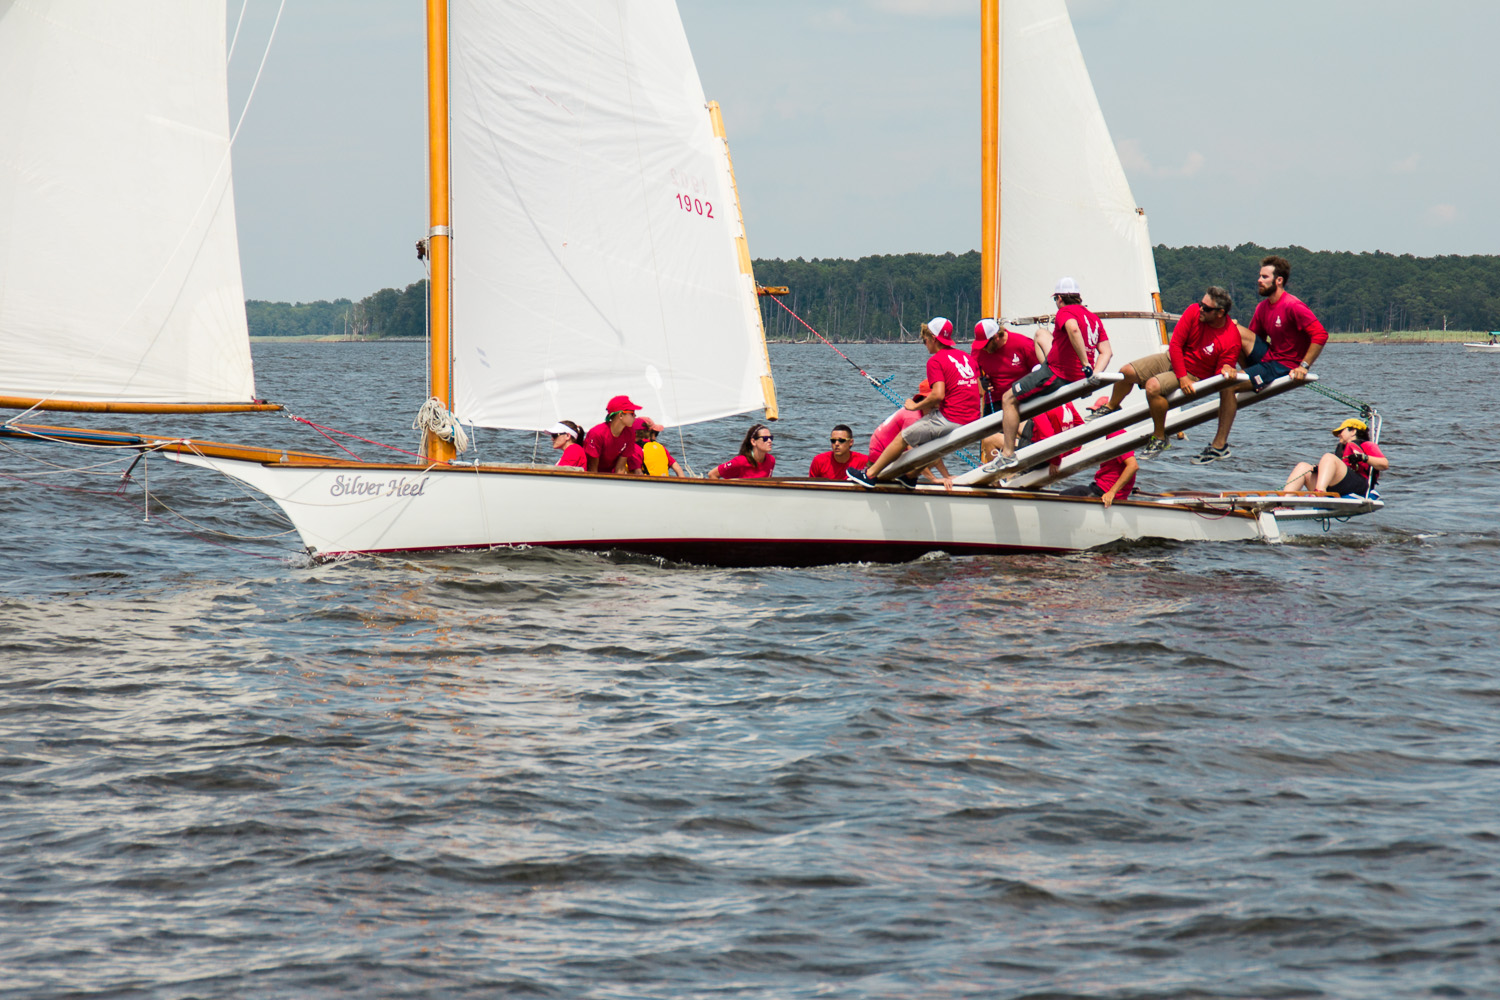 Log-Canoe-Race-at-Rock-Hall-Yacht-Club-July-2016-ss-24.jpg